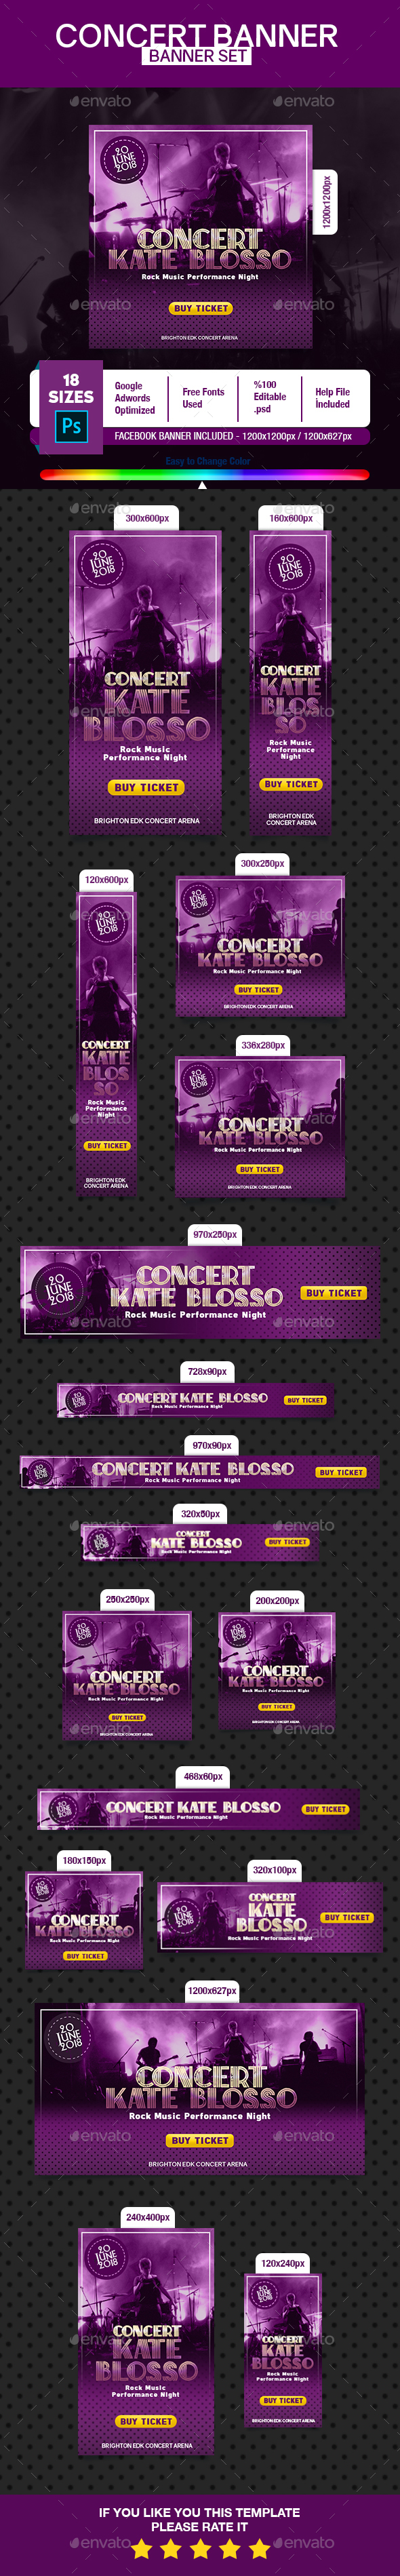 Concert Banner - Banners & Ads Web Elements